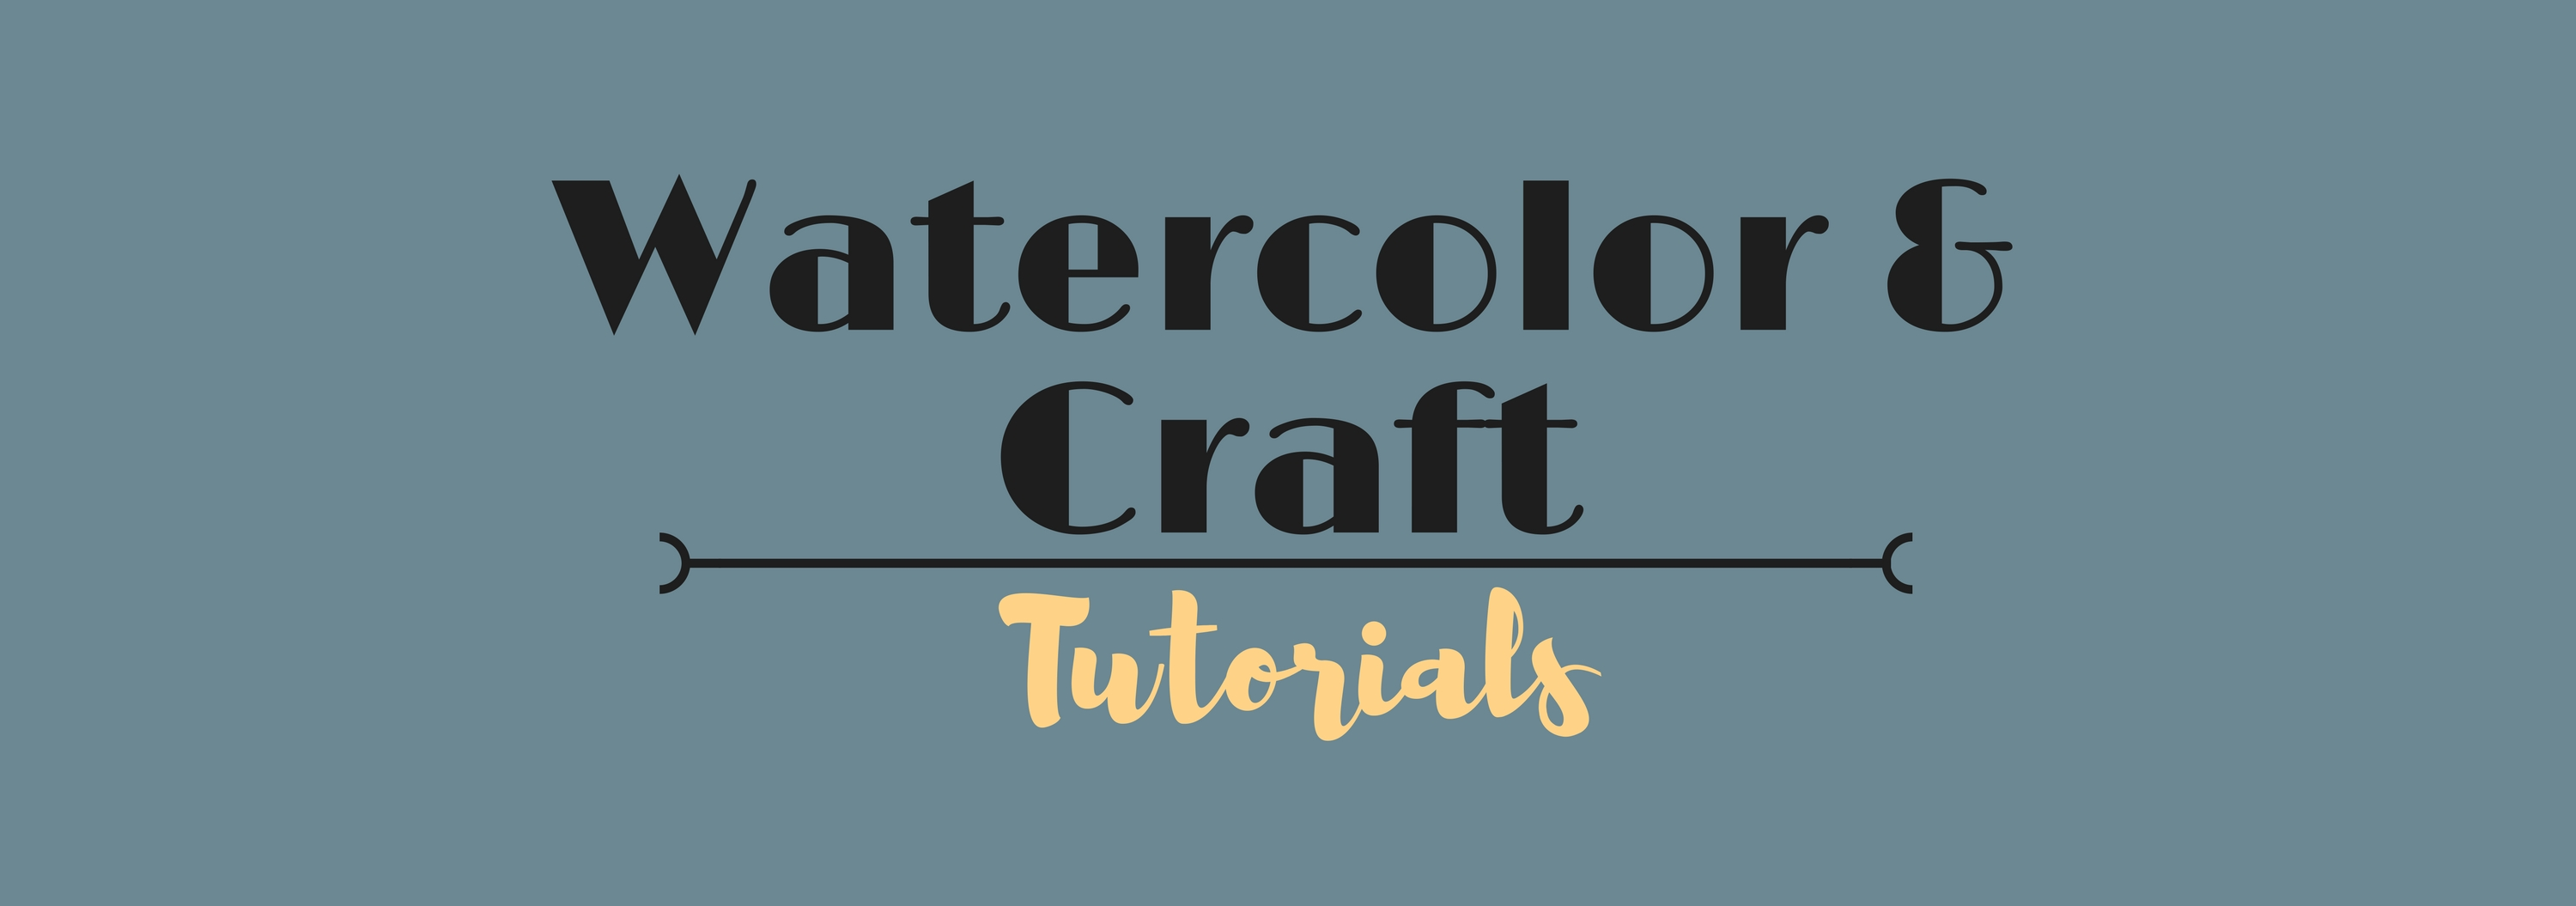 watercolor and crafts